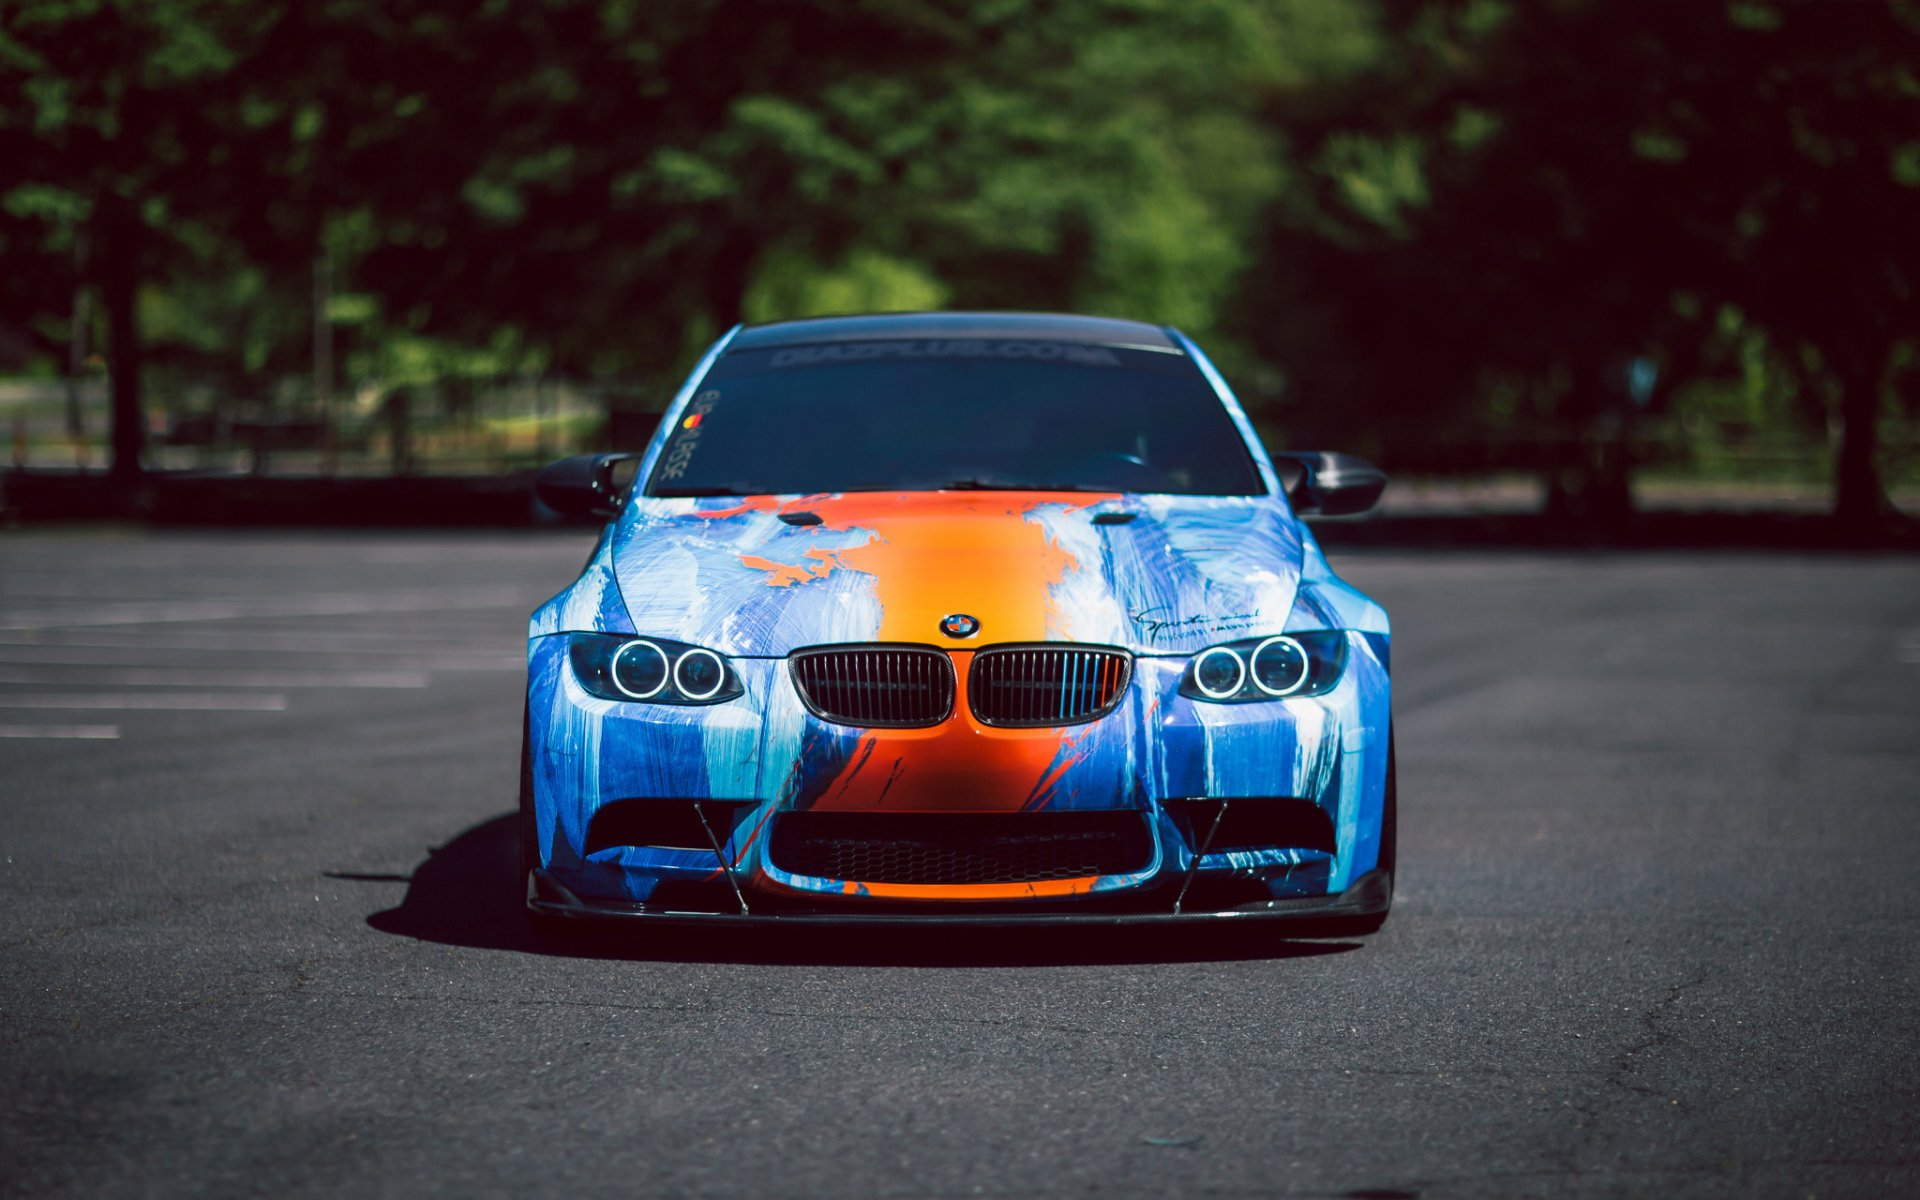 Vehicles - BMW M3  BMW Blue Car Car Vehicle Sport Car Wallpaper